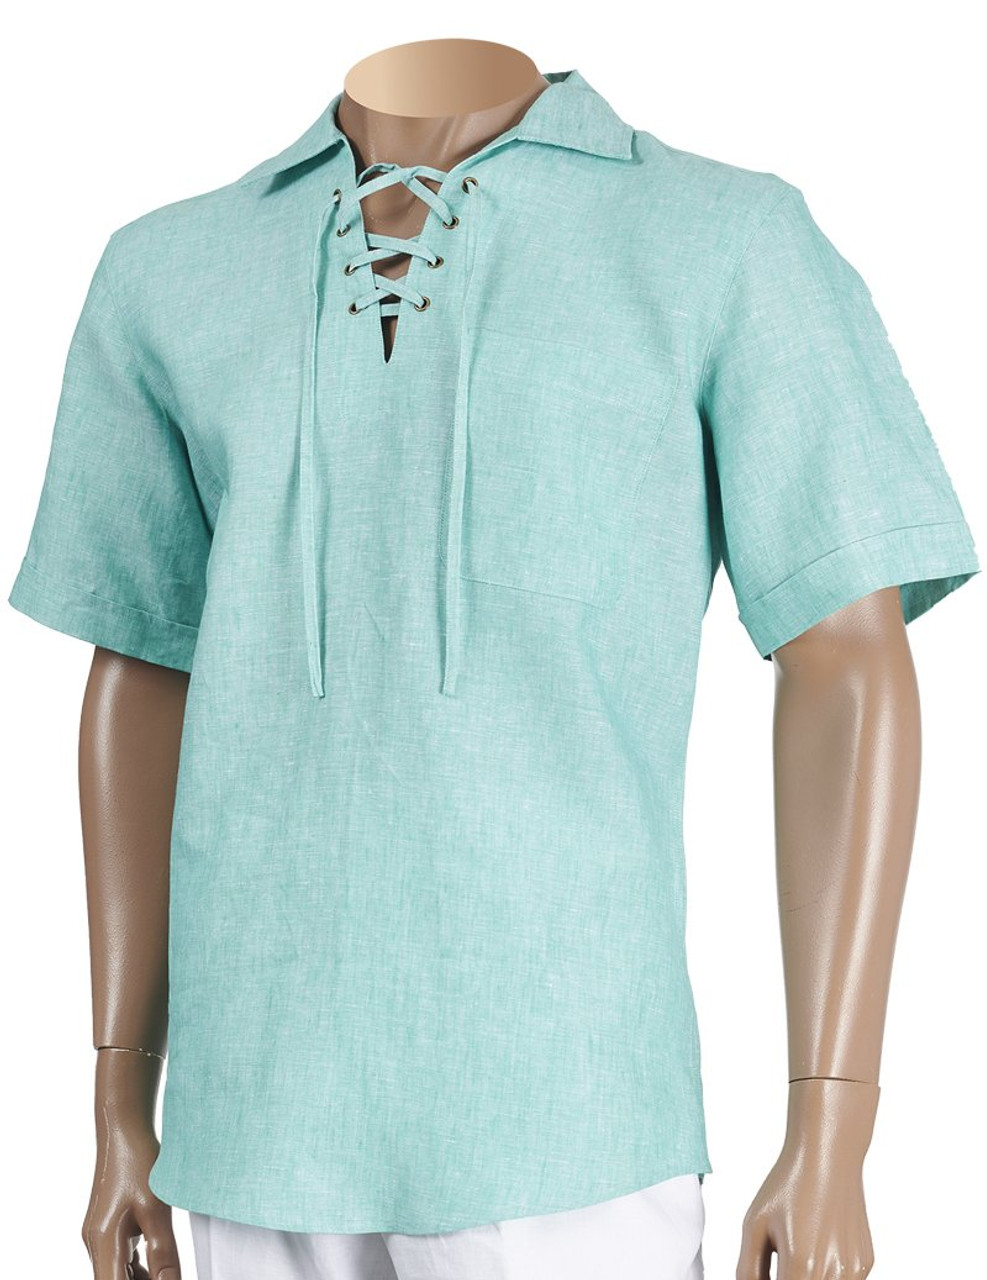 b4707f466984 Linen Lacing Front Shirts by Inserch. Keep it cool and stylish for the  summer !